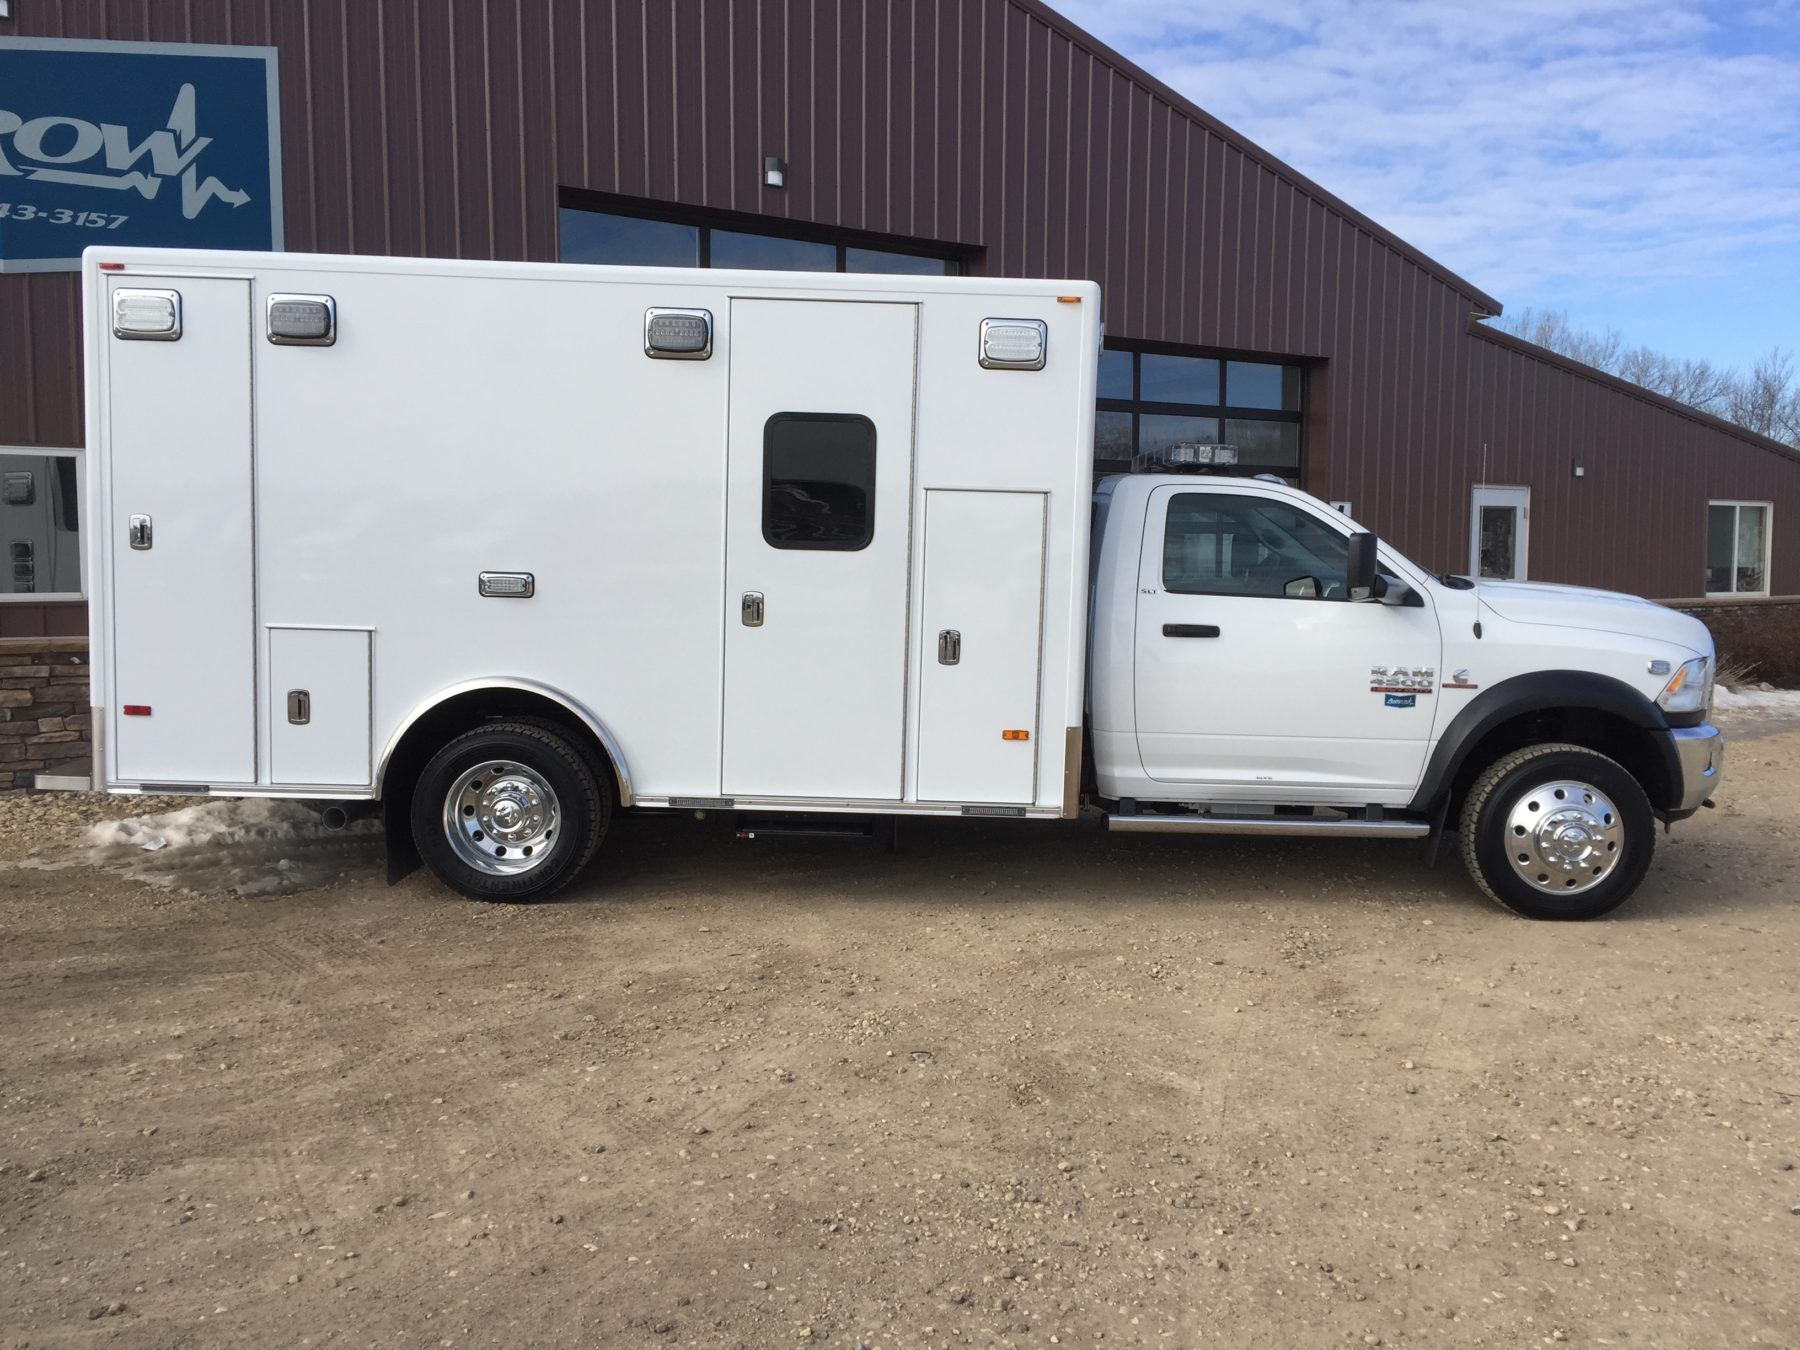 2017 Ram 4500 4x4 Heavy Duty Ambulance For Sale – Picture 5